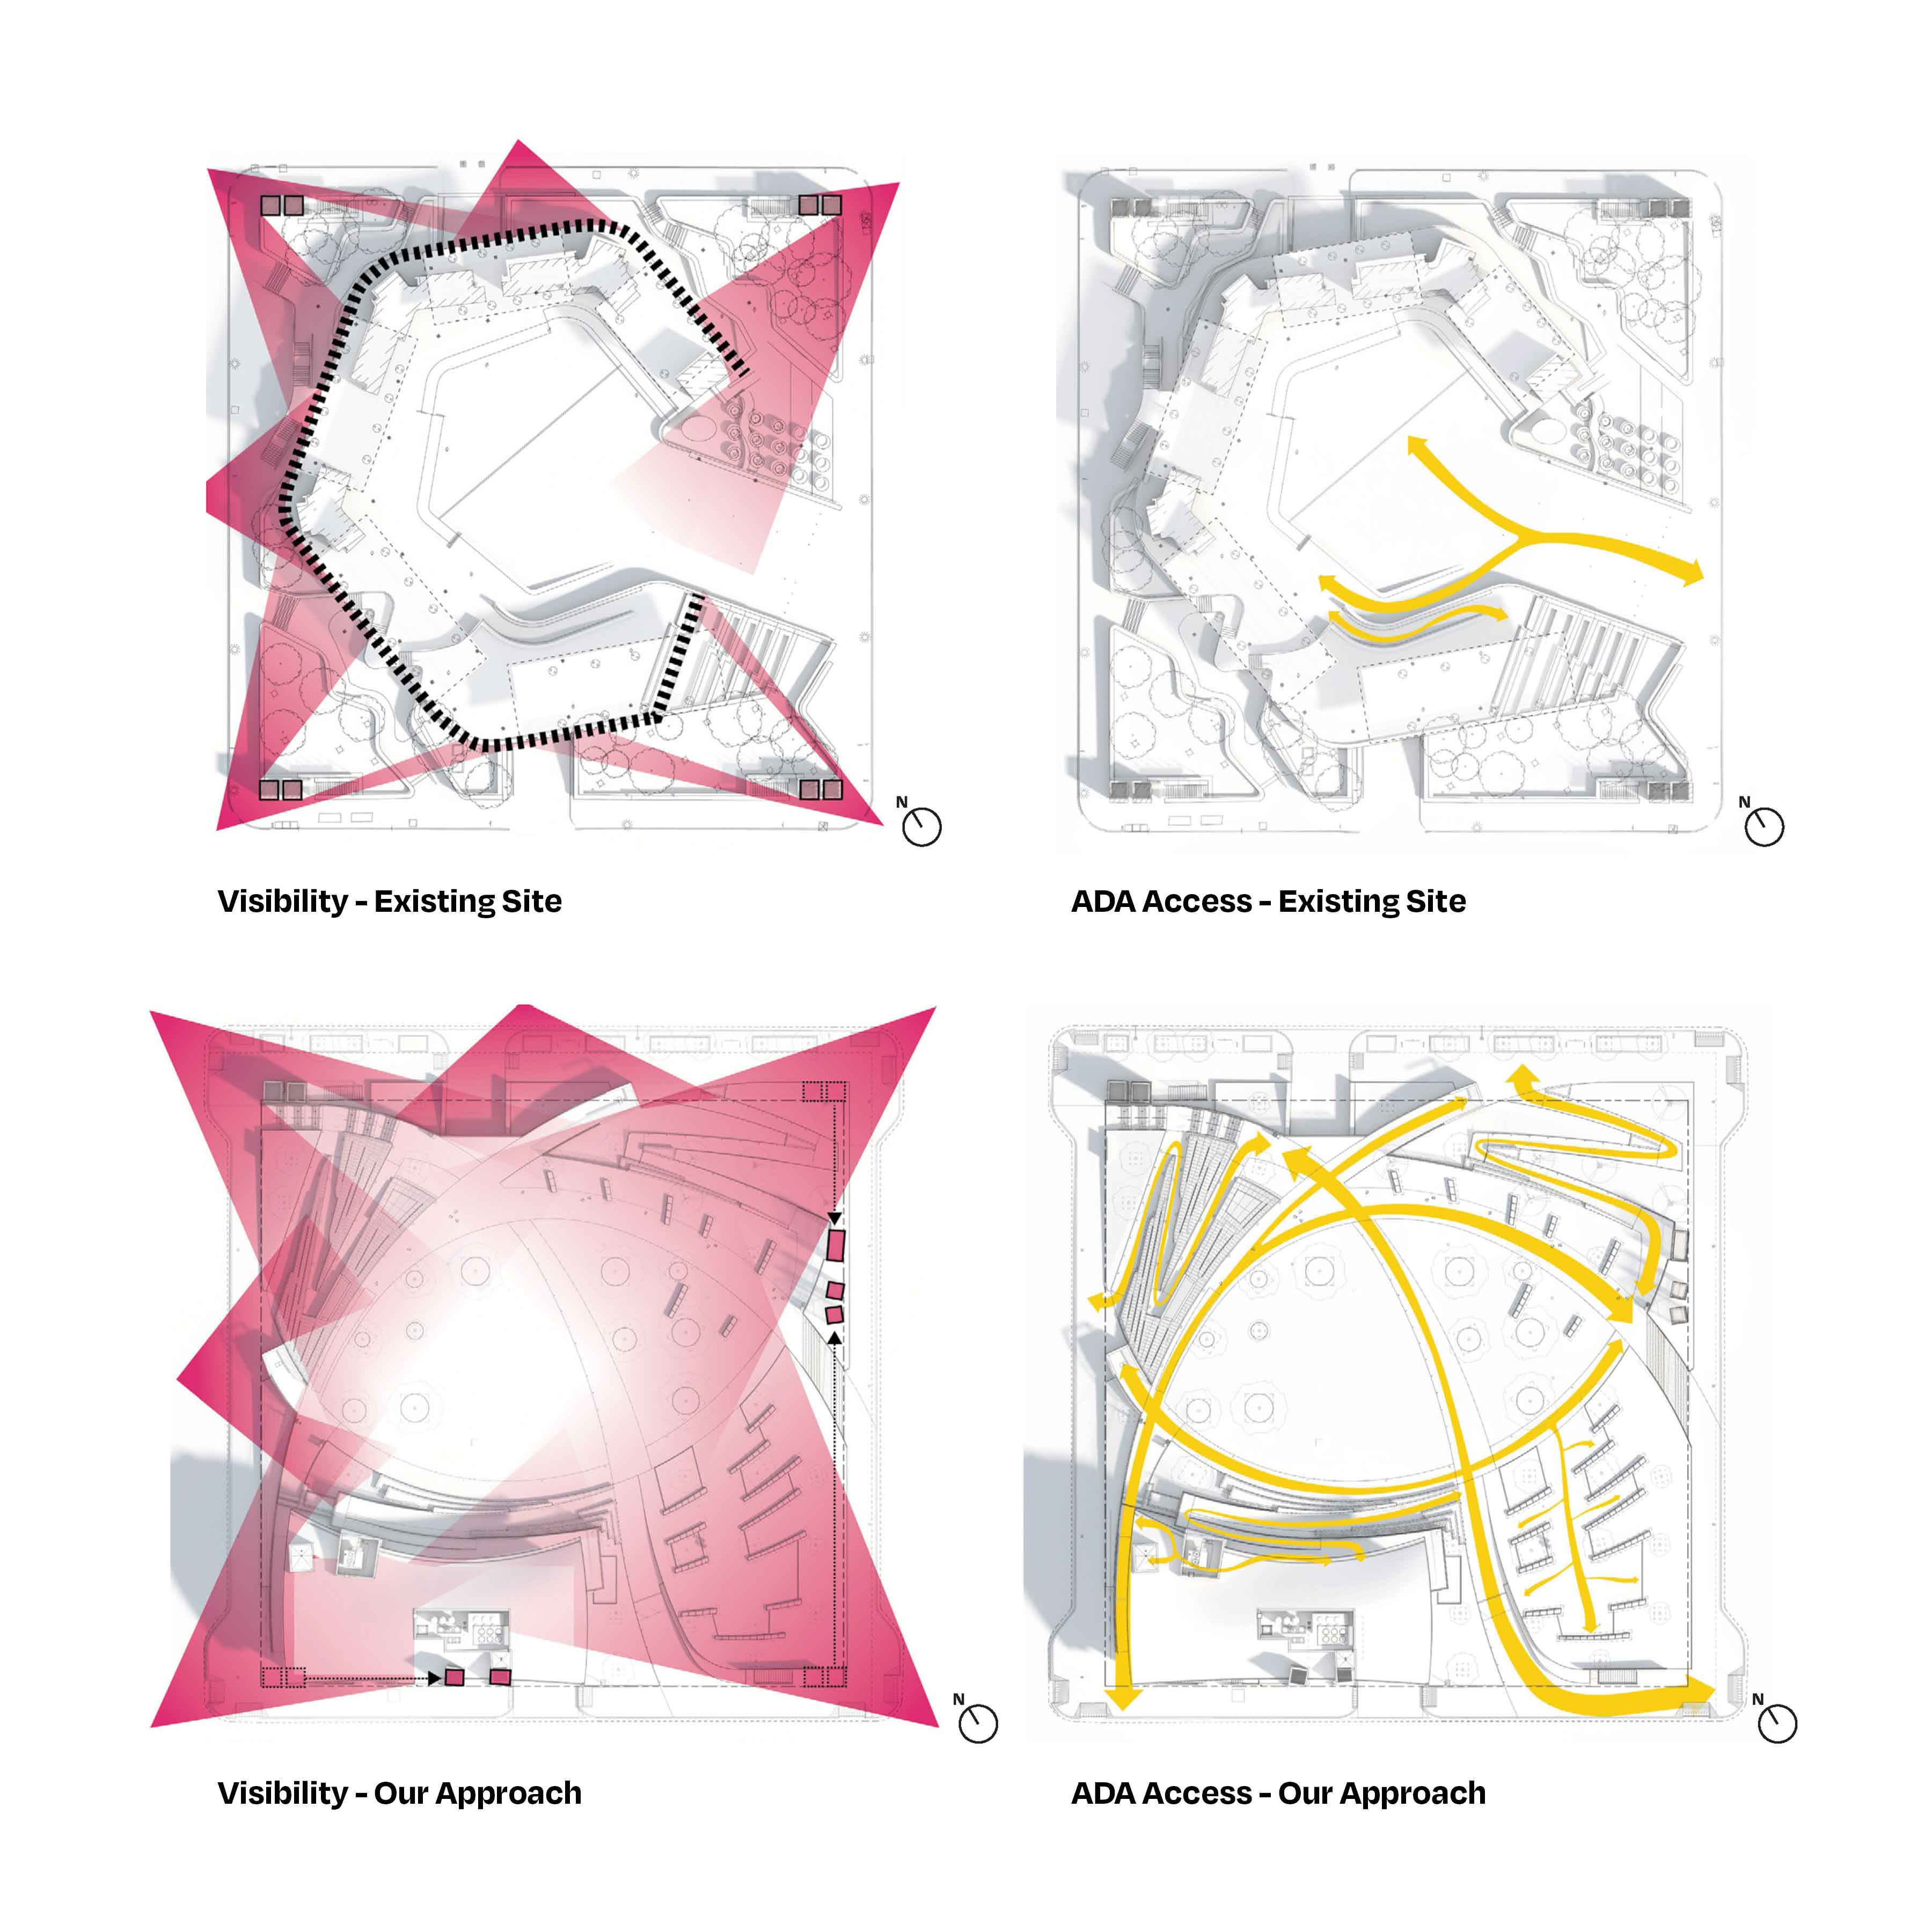 Site diagram of Houston's Wyatt square detonating the before and after areas of inclusivity and accessibility